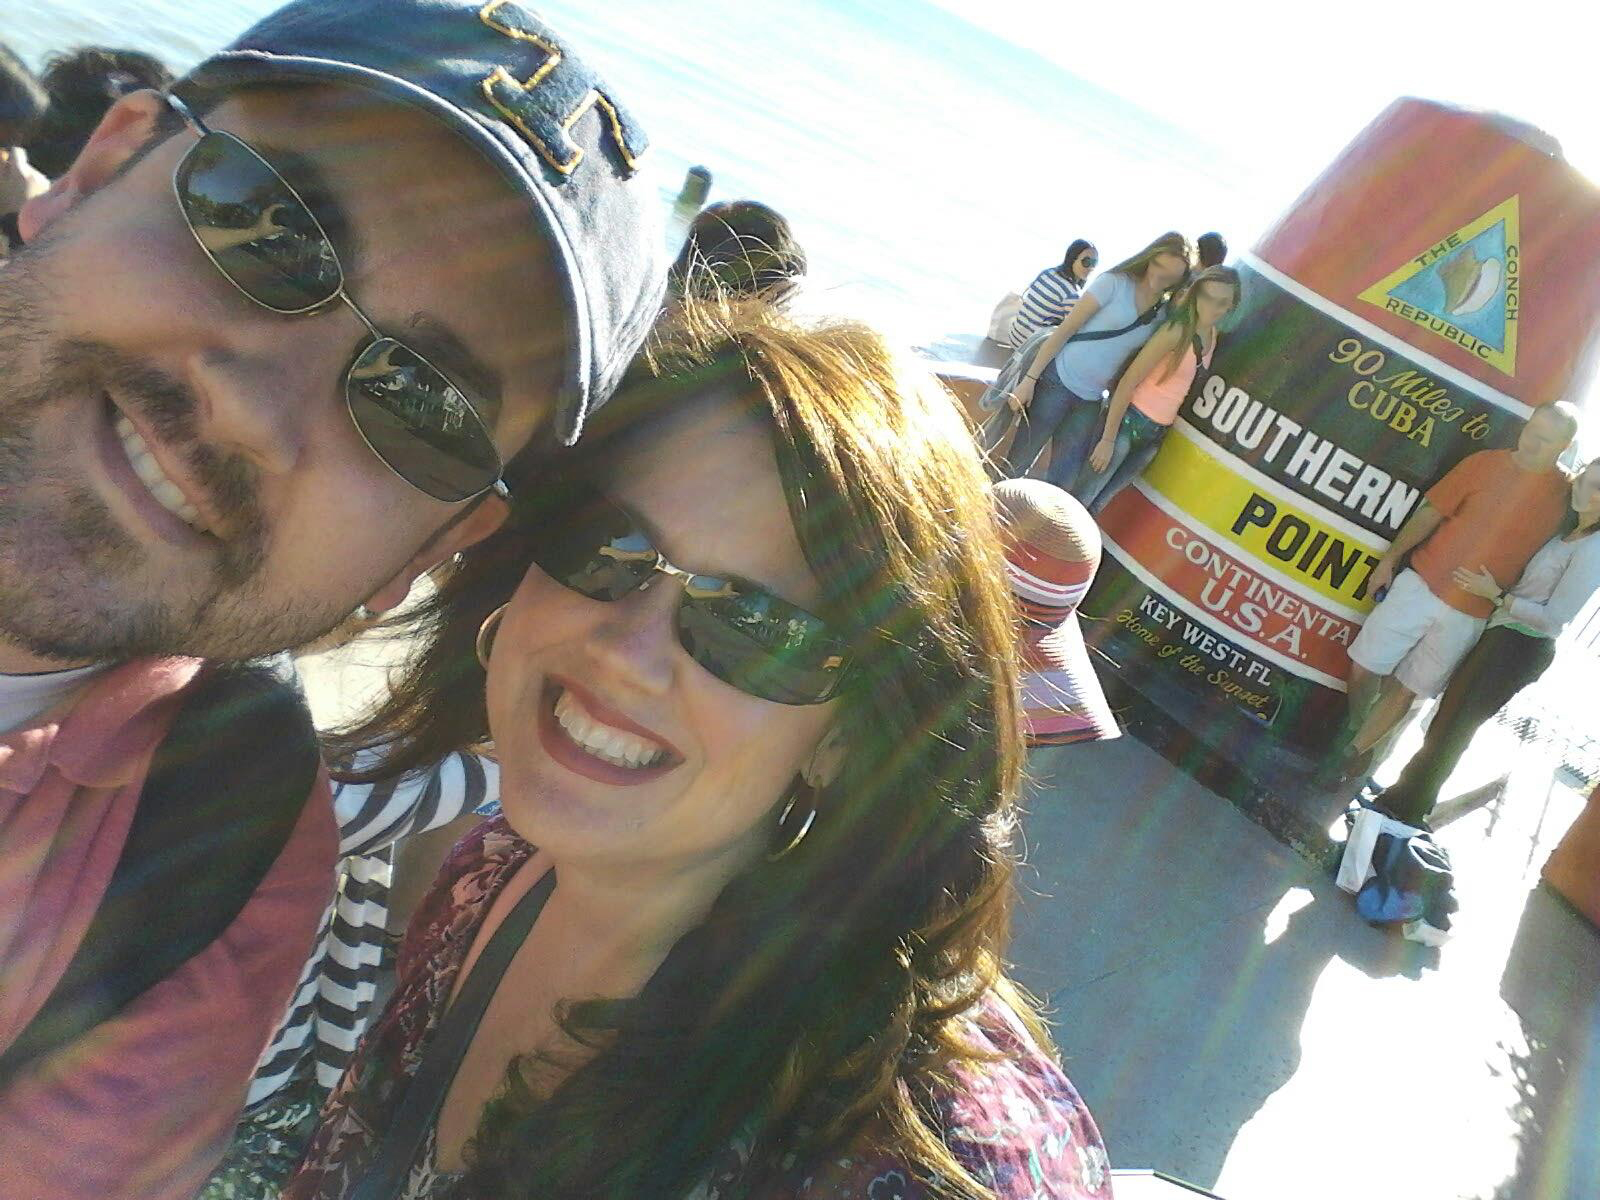 The McGees on vacation at the southernmost point in the US